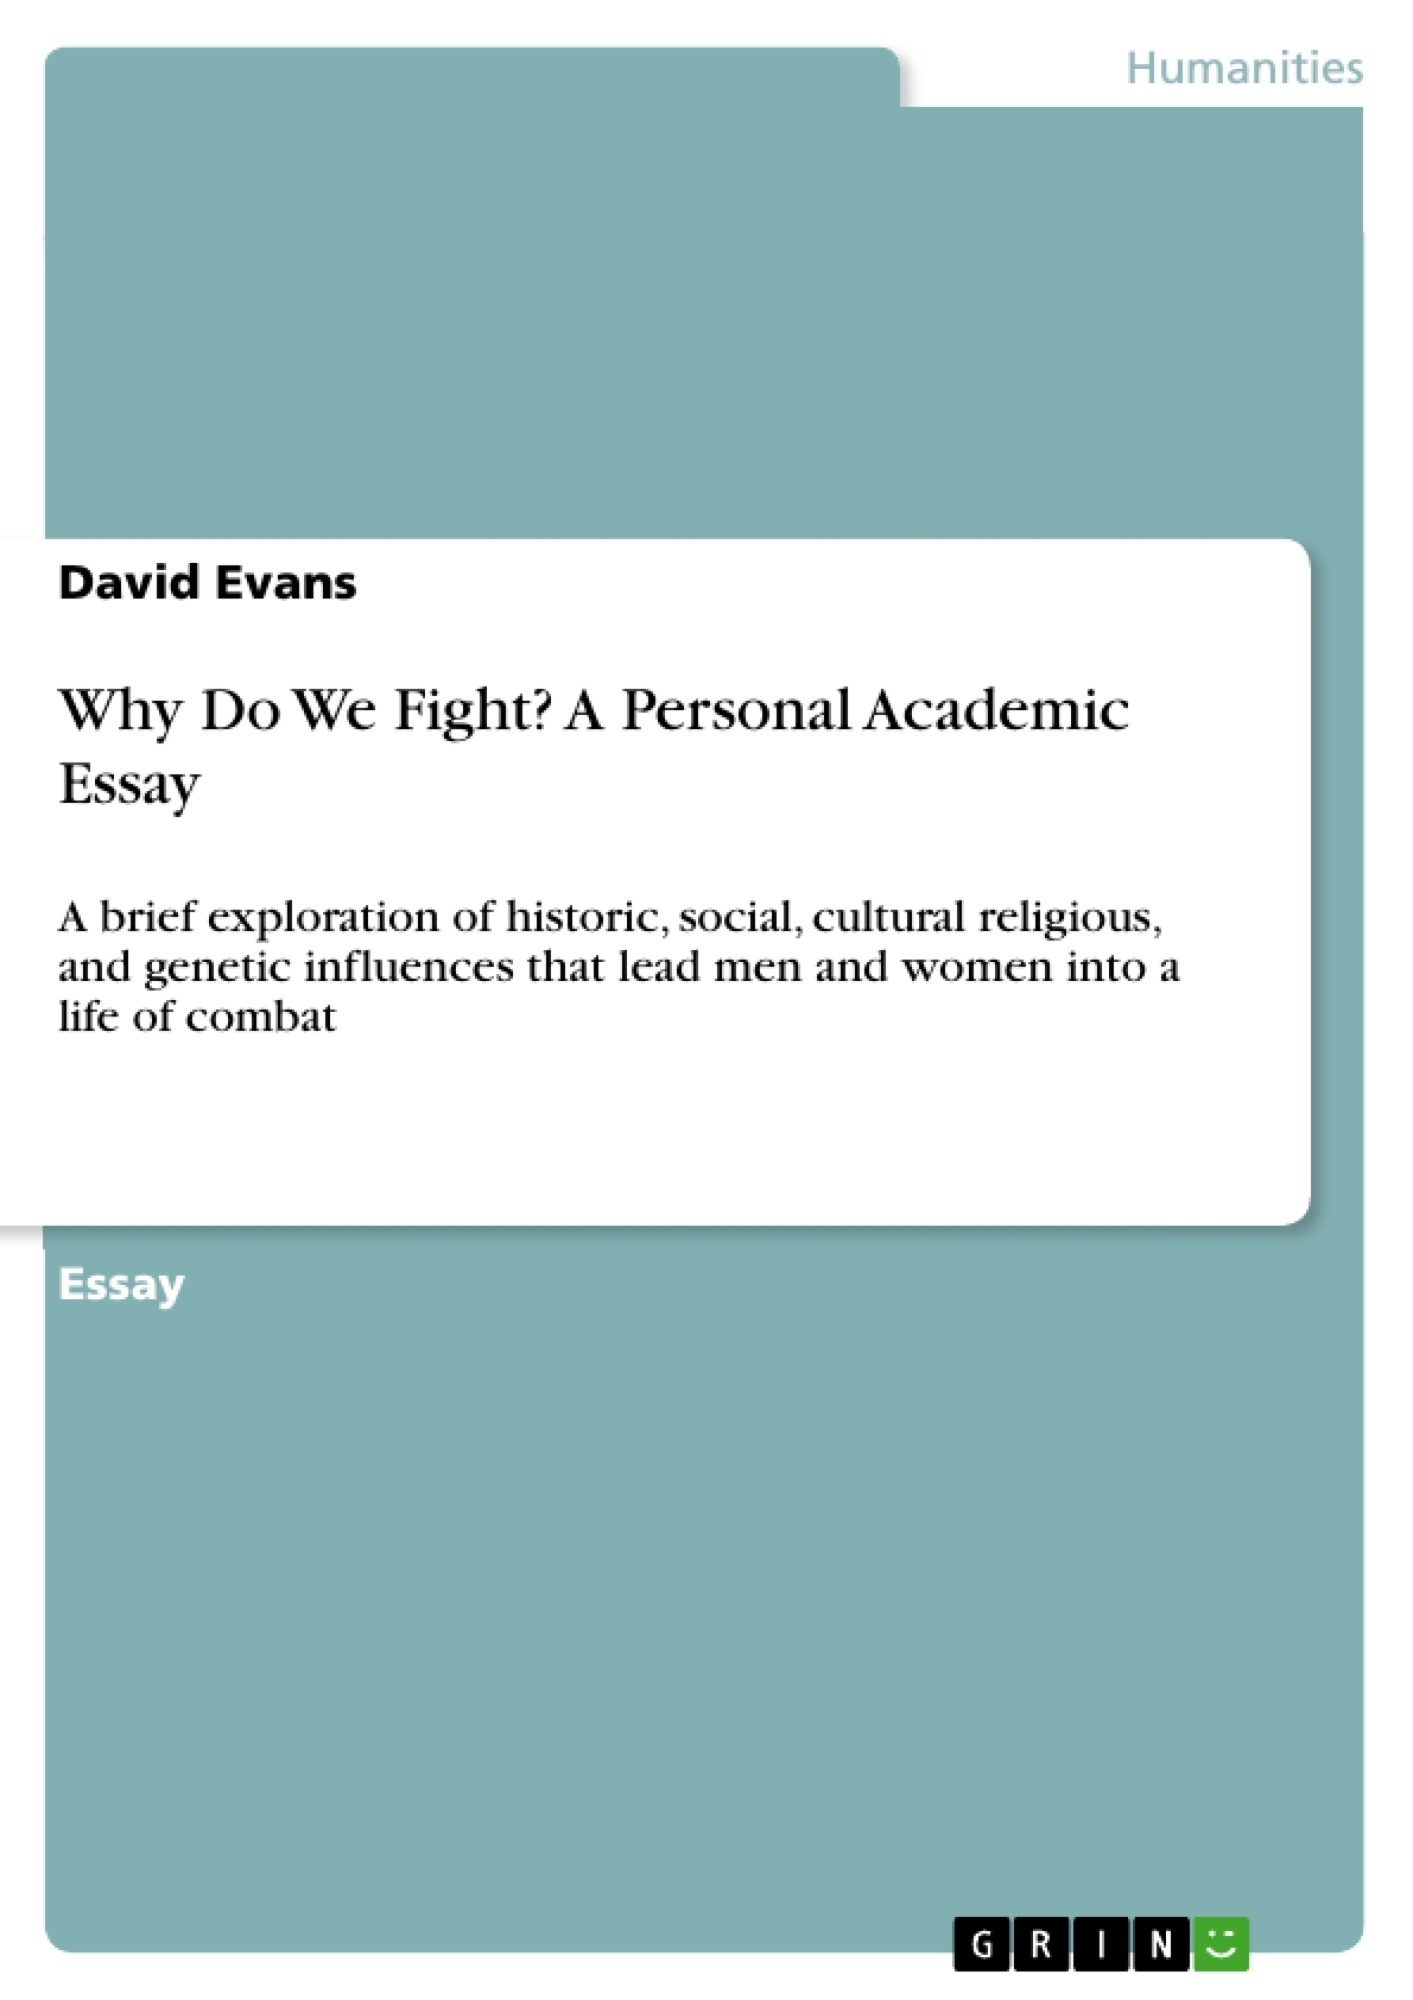 Title: Why Do We Fight? A Personal Academic Essay